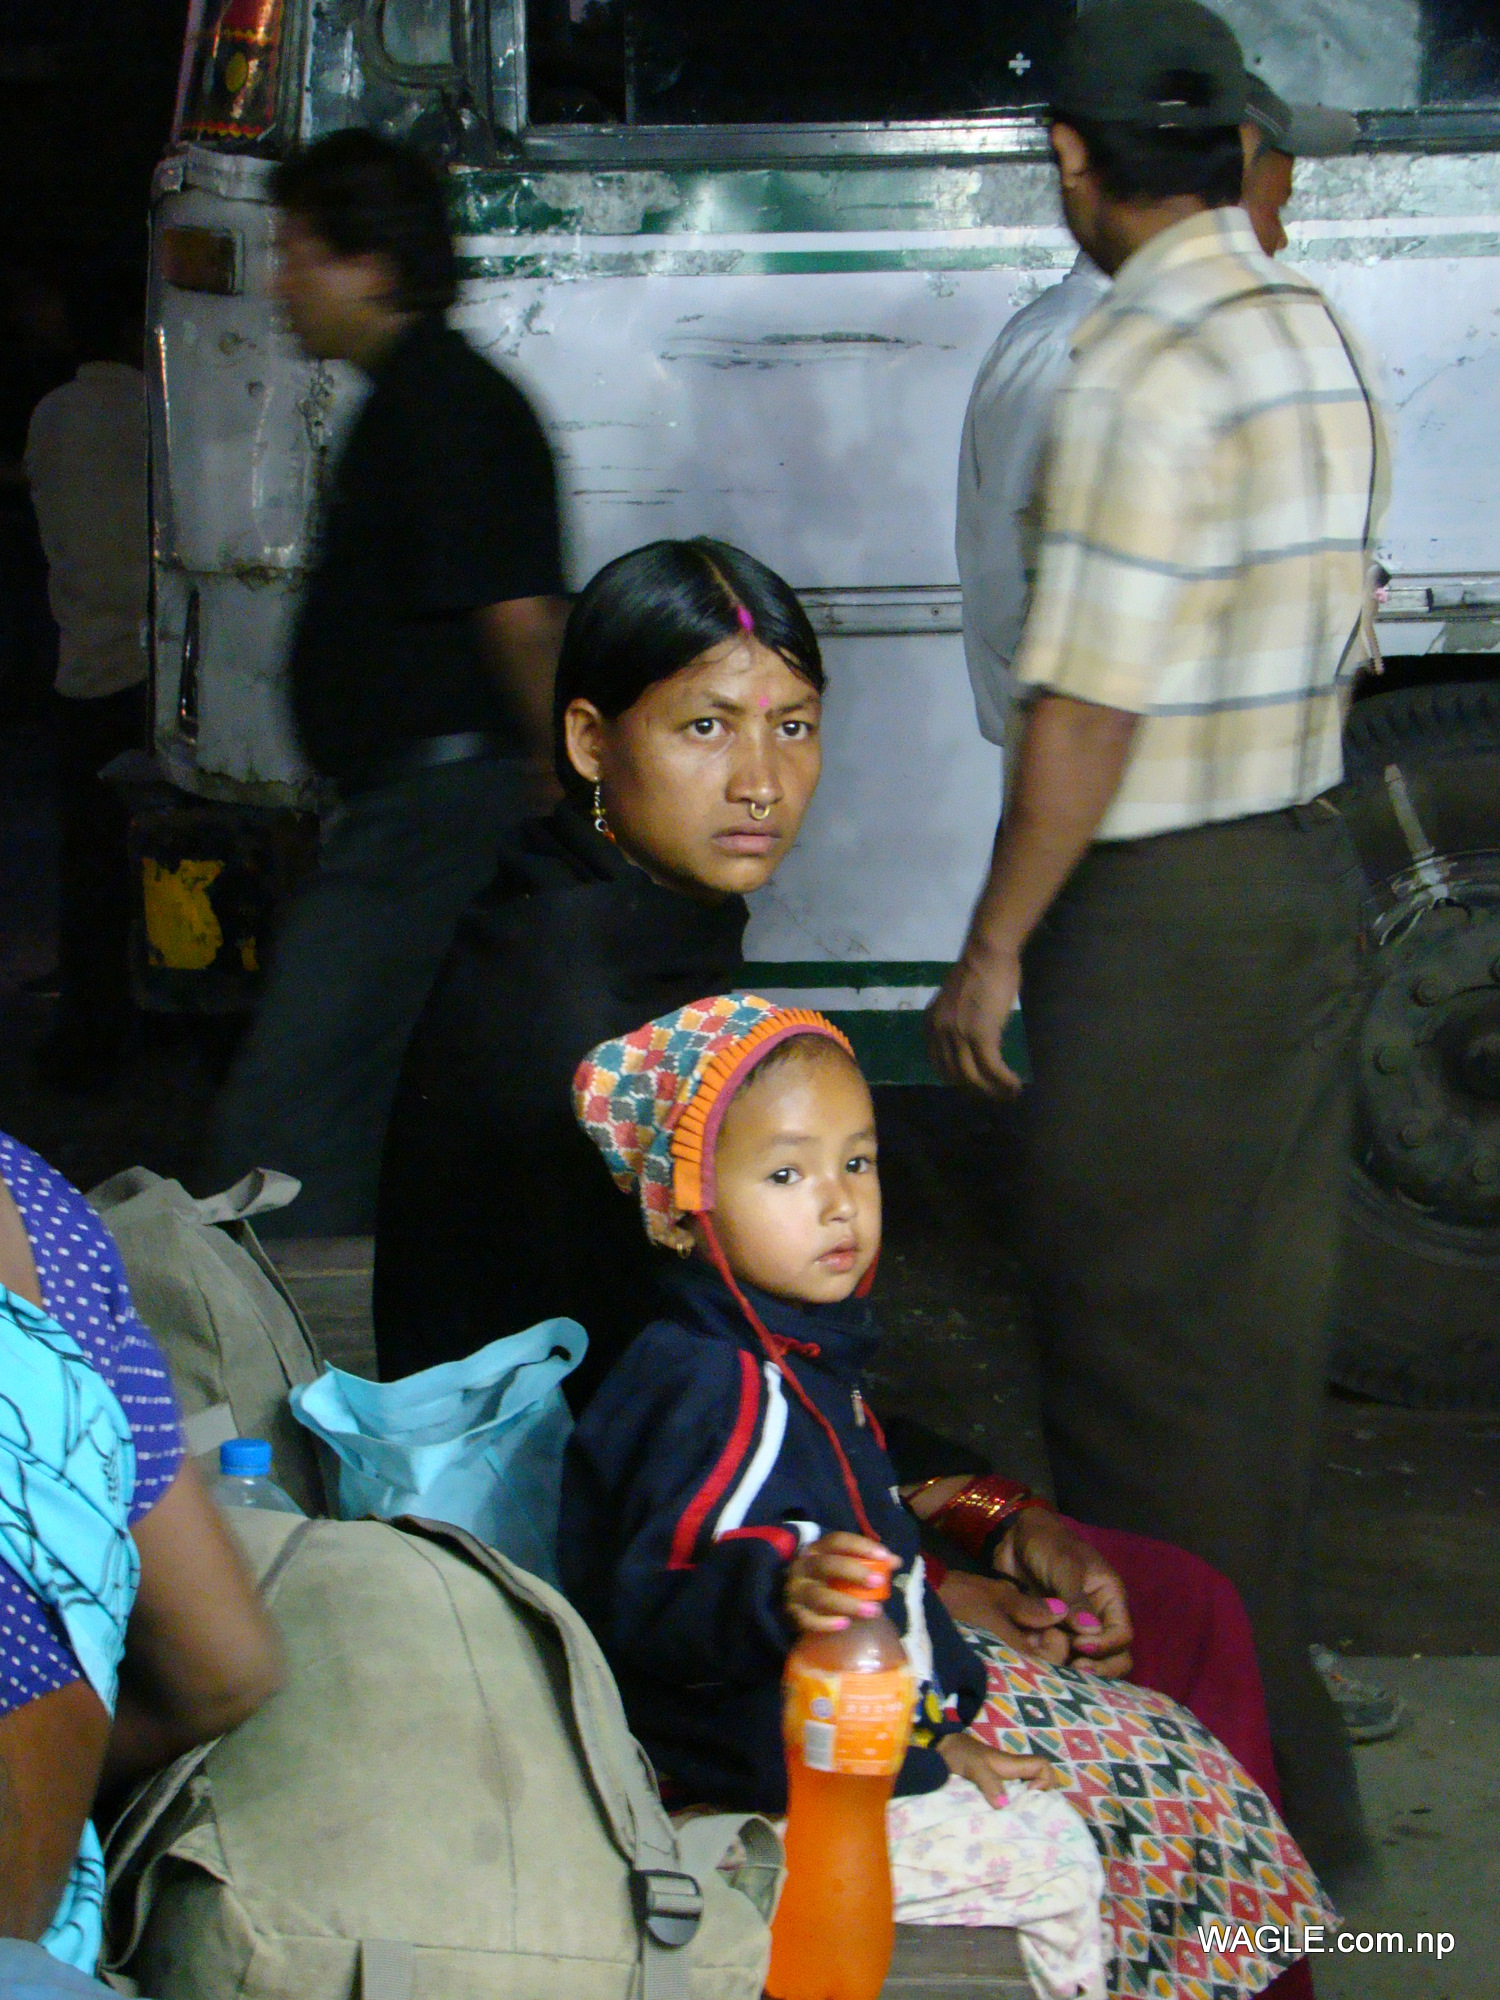 A kid and his mother: India bound- expecting to earn living that Nepal, their country, couldn't provide. At the bus stand in Banbasa, Indian town bordering far west Nepal